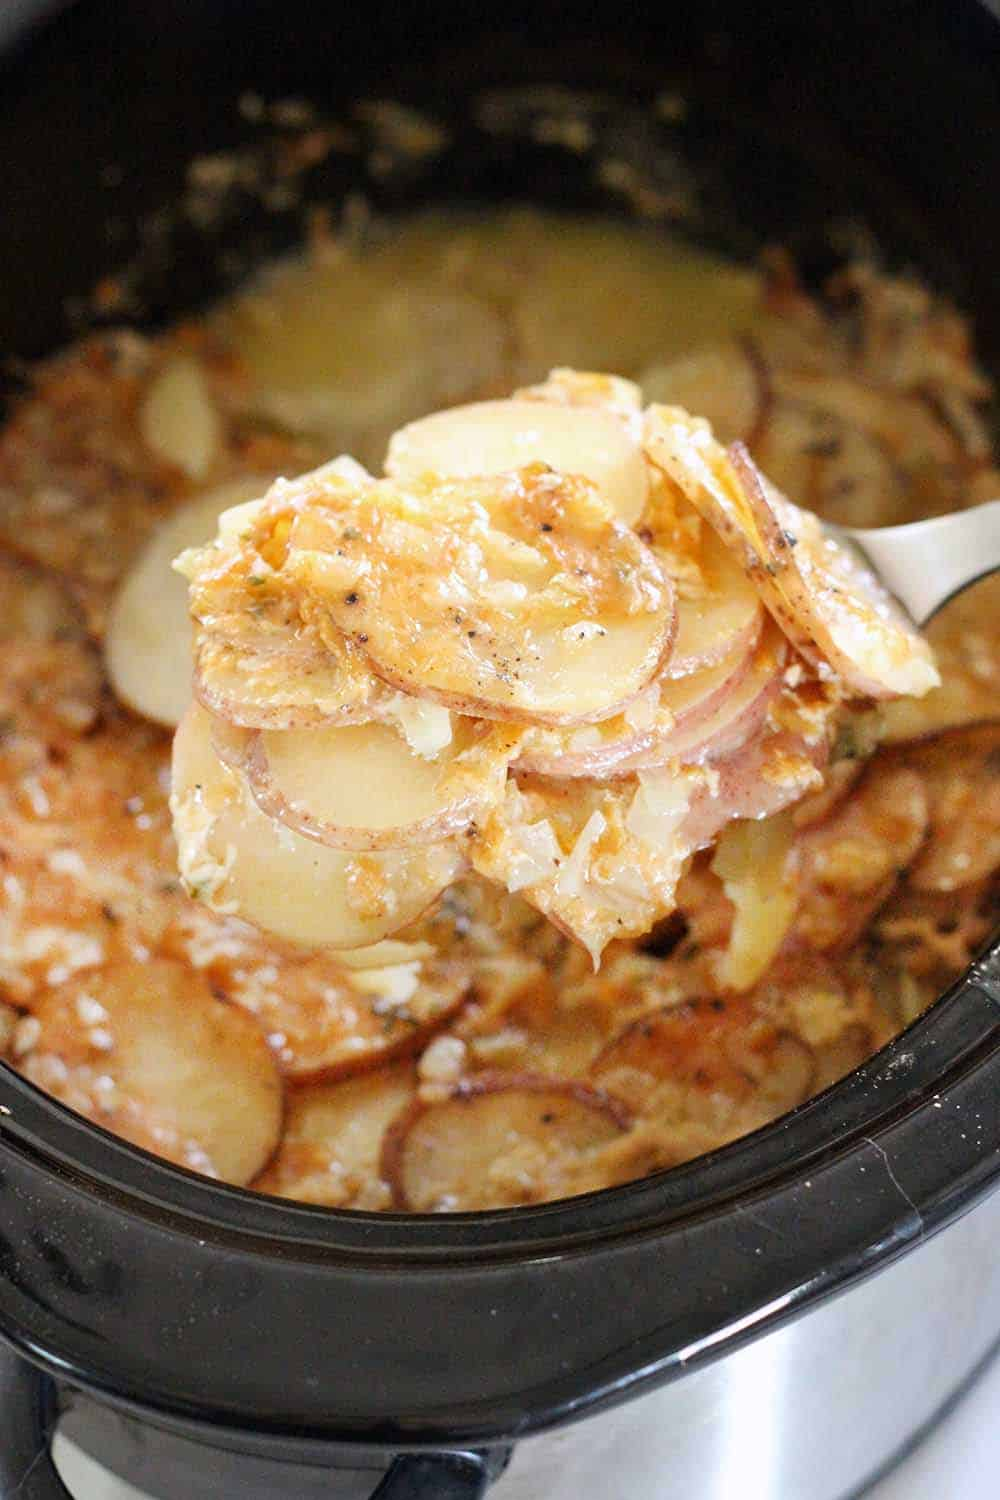 These Slow Cooker Scalloped Potatoes are rich and creamy and smothered in Gruyere and Parmesan cheese. It's the perfect thing to make for Thanksgiving dinner because it frees up space in your oven and on your stove top!